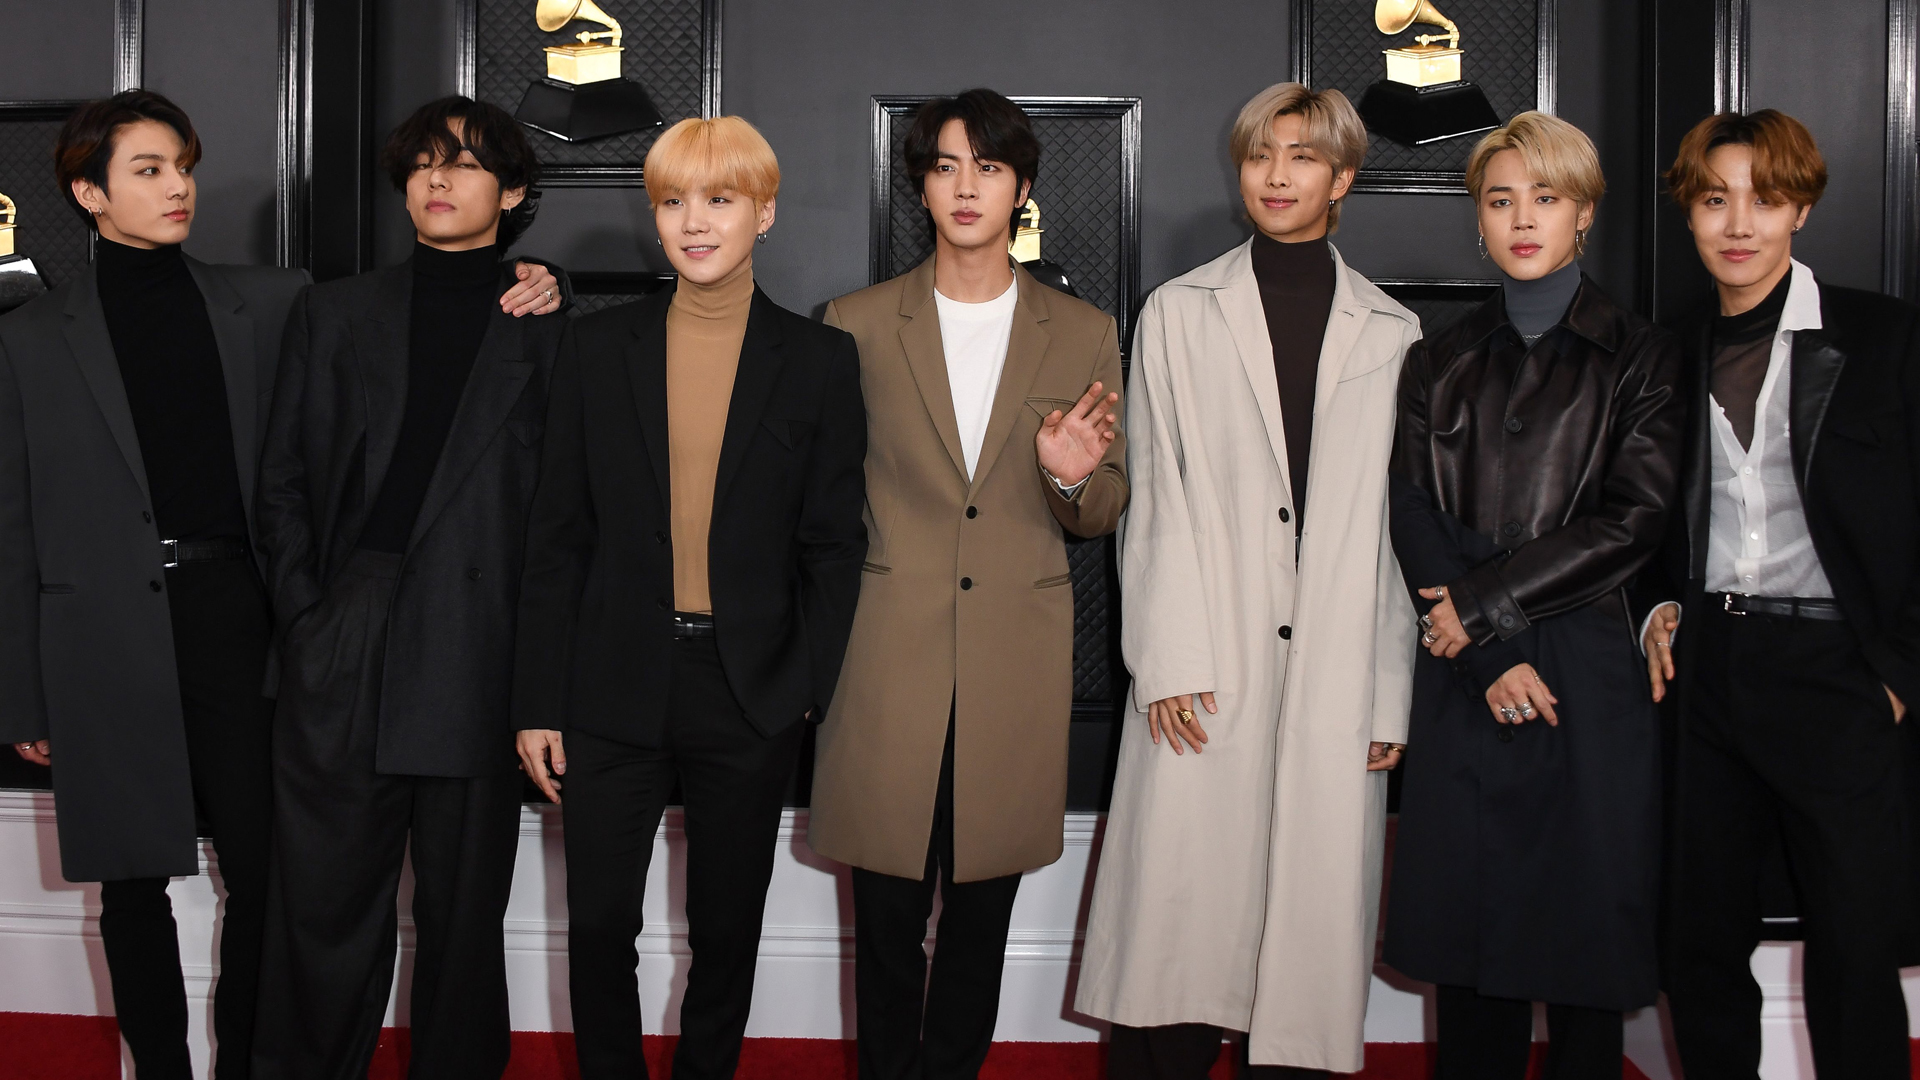 BTS at 2020 Grammys Red Carpet